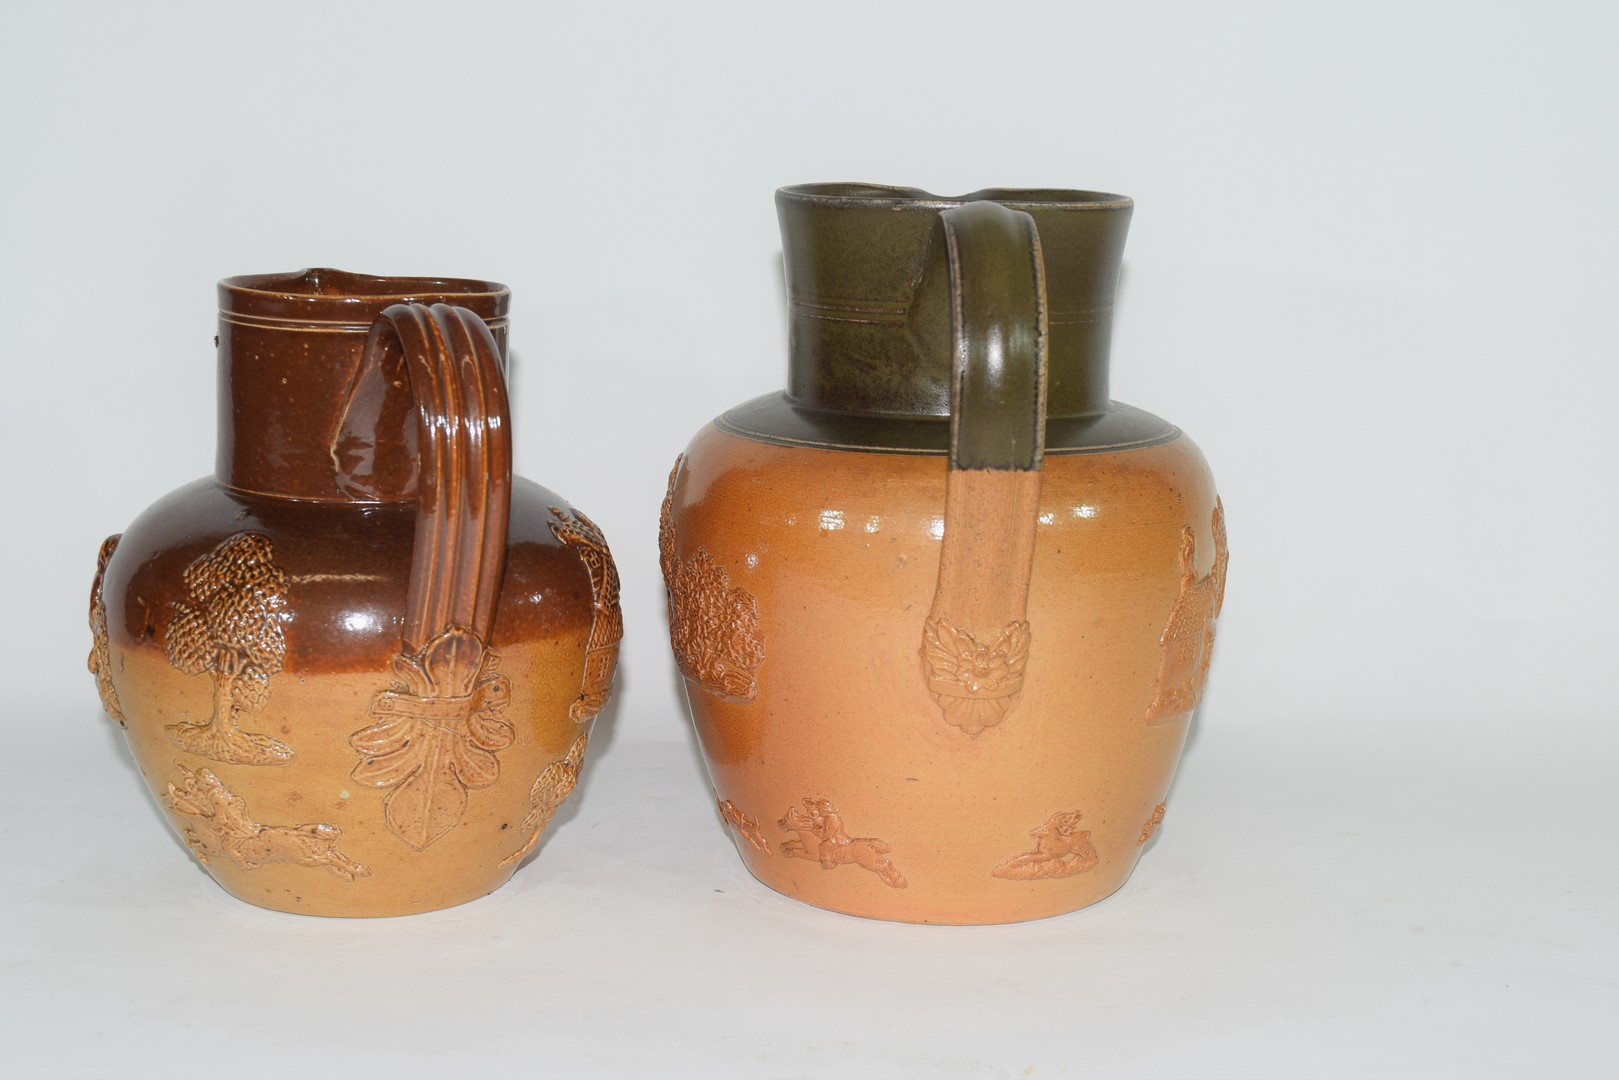 Doulton Lambeth brown harvest ware jug and one other - Image 2 of 8